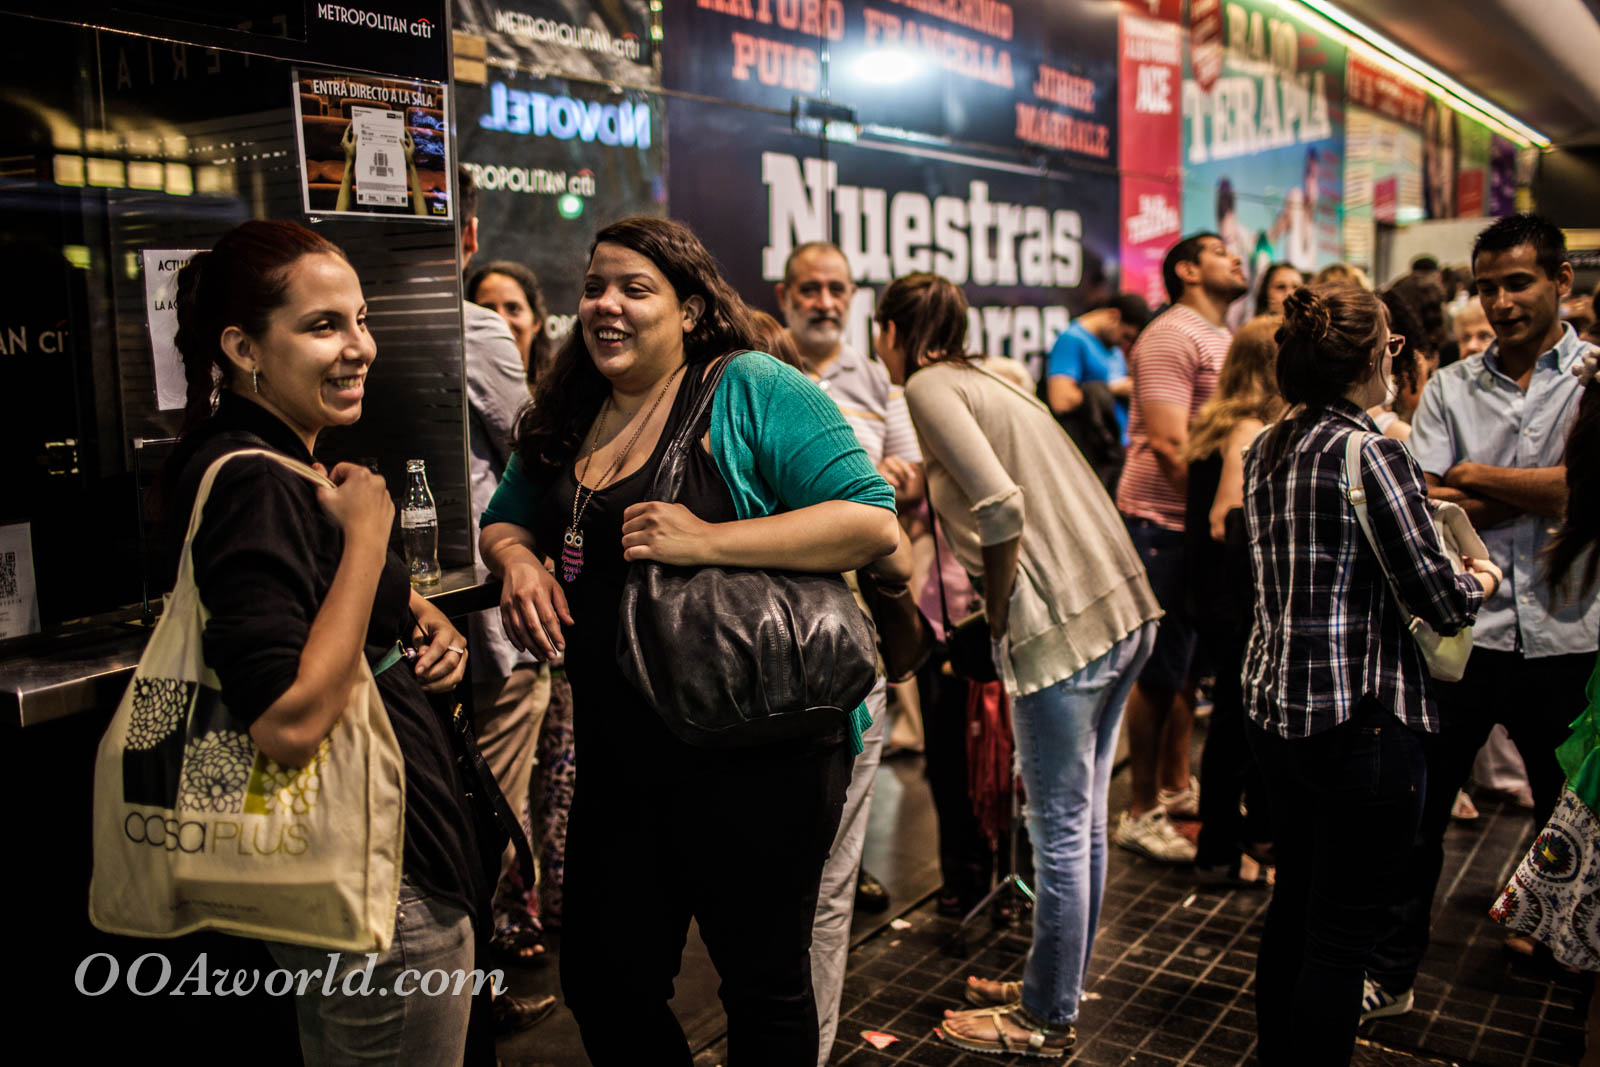 Theater Crowd Corrientes Photo Ooaworld